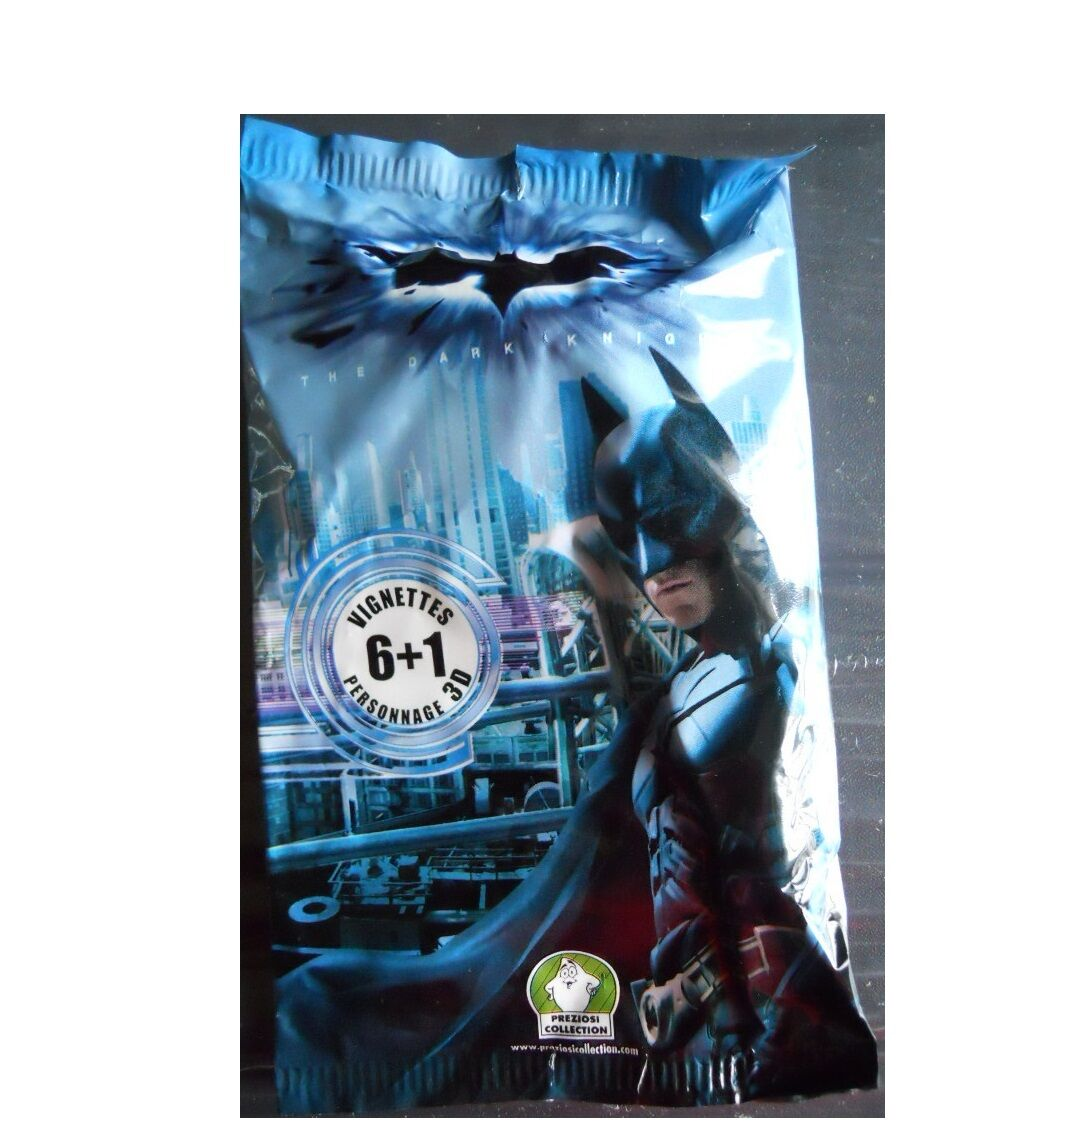 Lotto 20 bustine batman 3d - pvc - dc - helden 2008 + 6 vignetten + 1 personaggio 3d